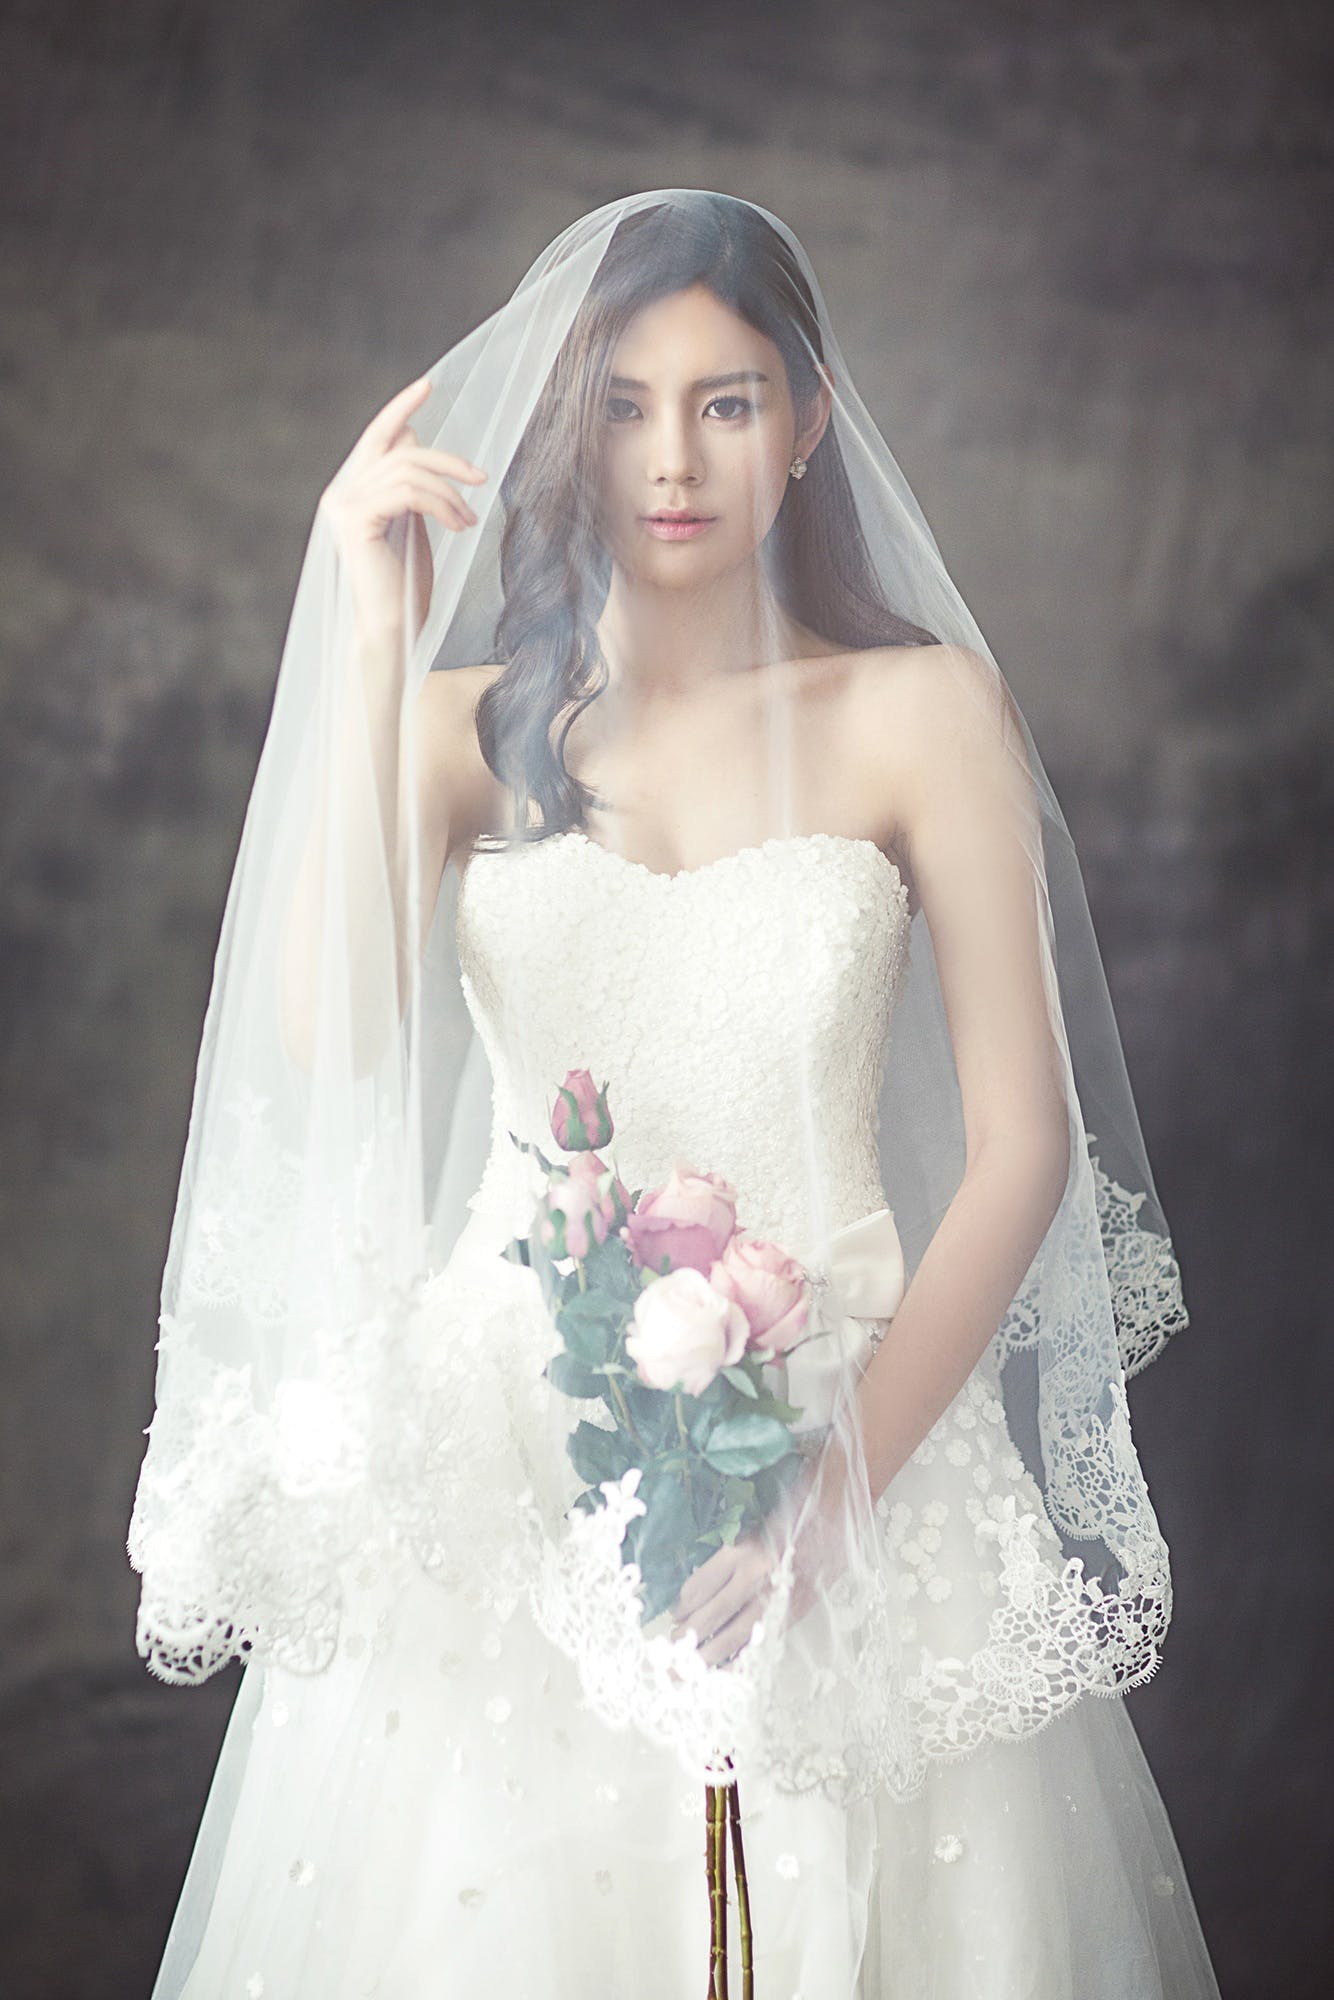 Woman in White Strapless Sweetheart Wedding Dress With Rose Bouquet Covered in White Veil